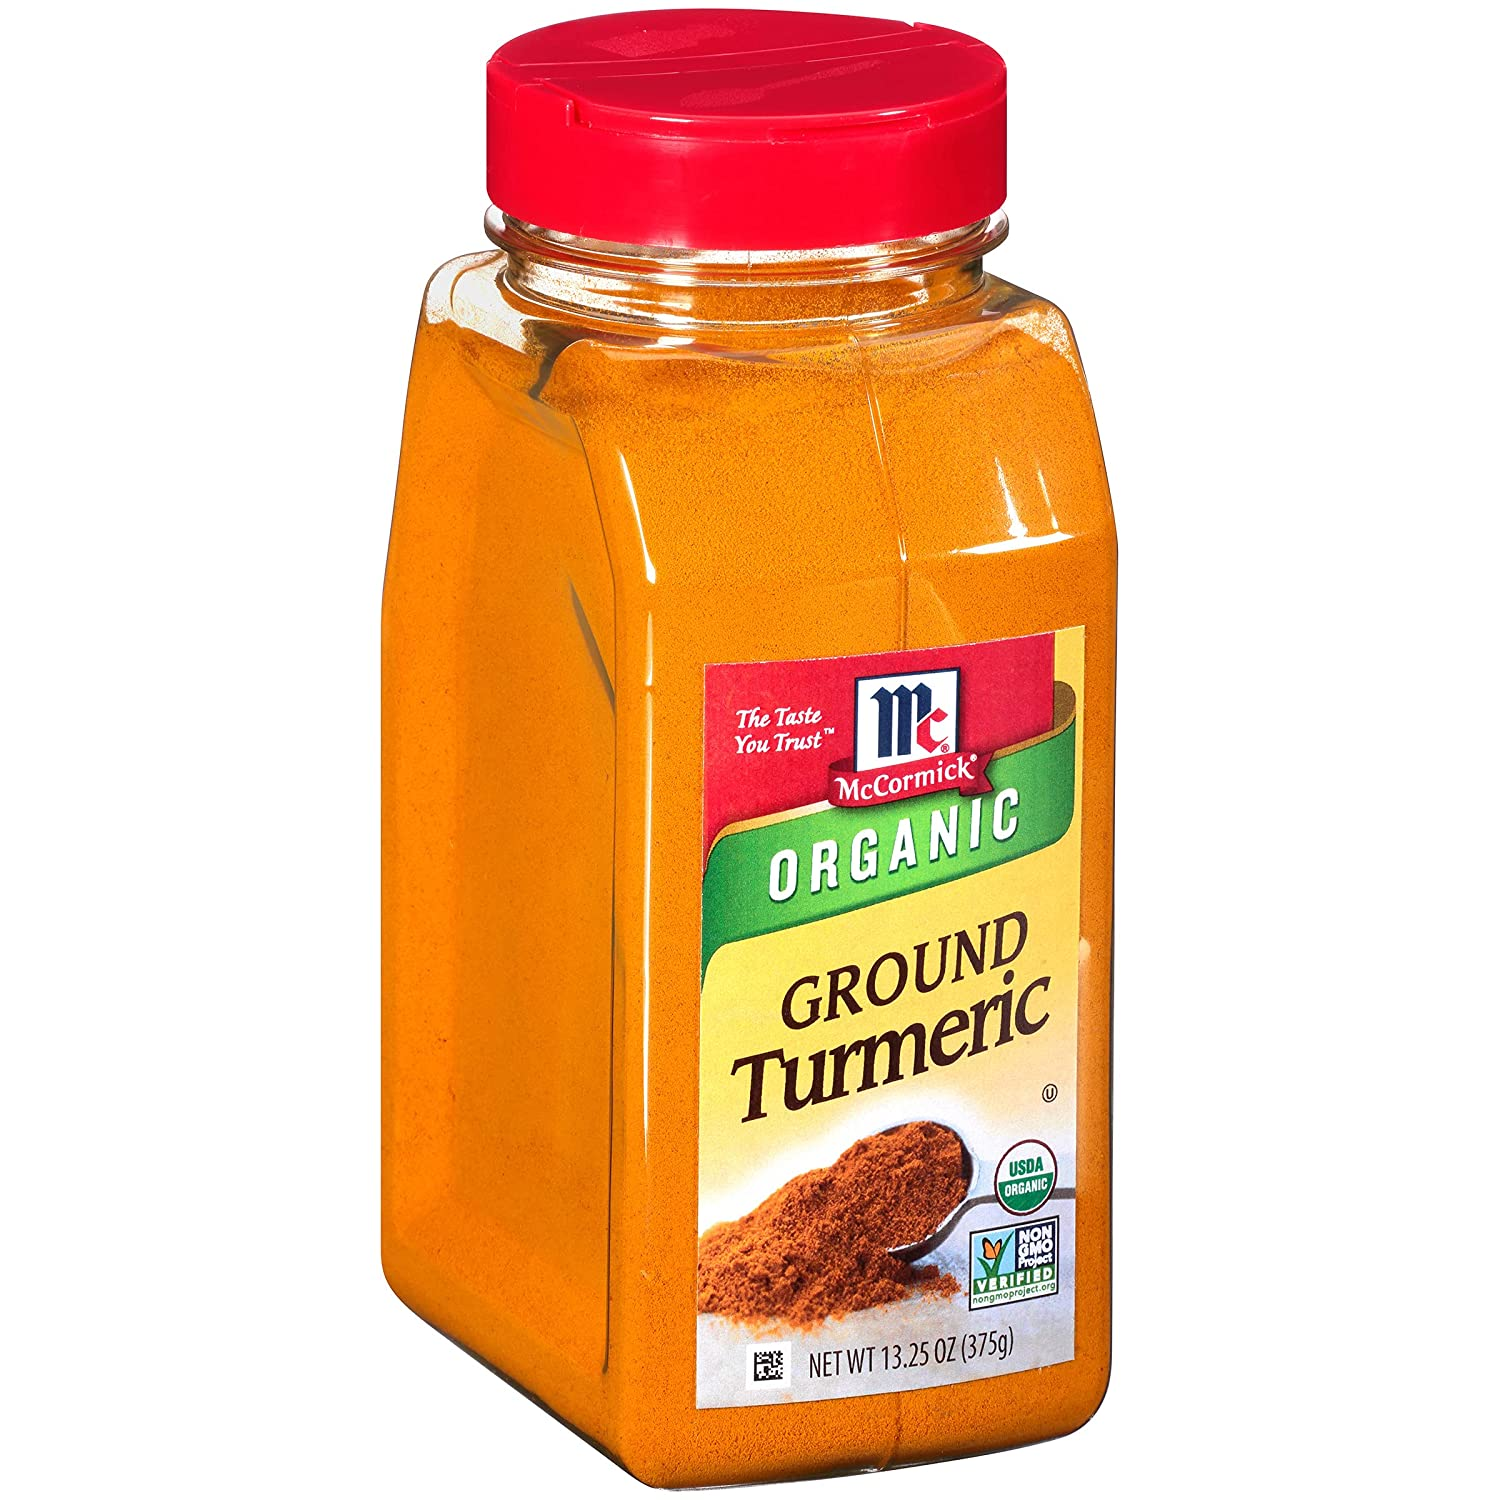 All items in the store McCormick Organic Ground 13.25 Max 61% OFF oz Turmeric